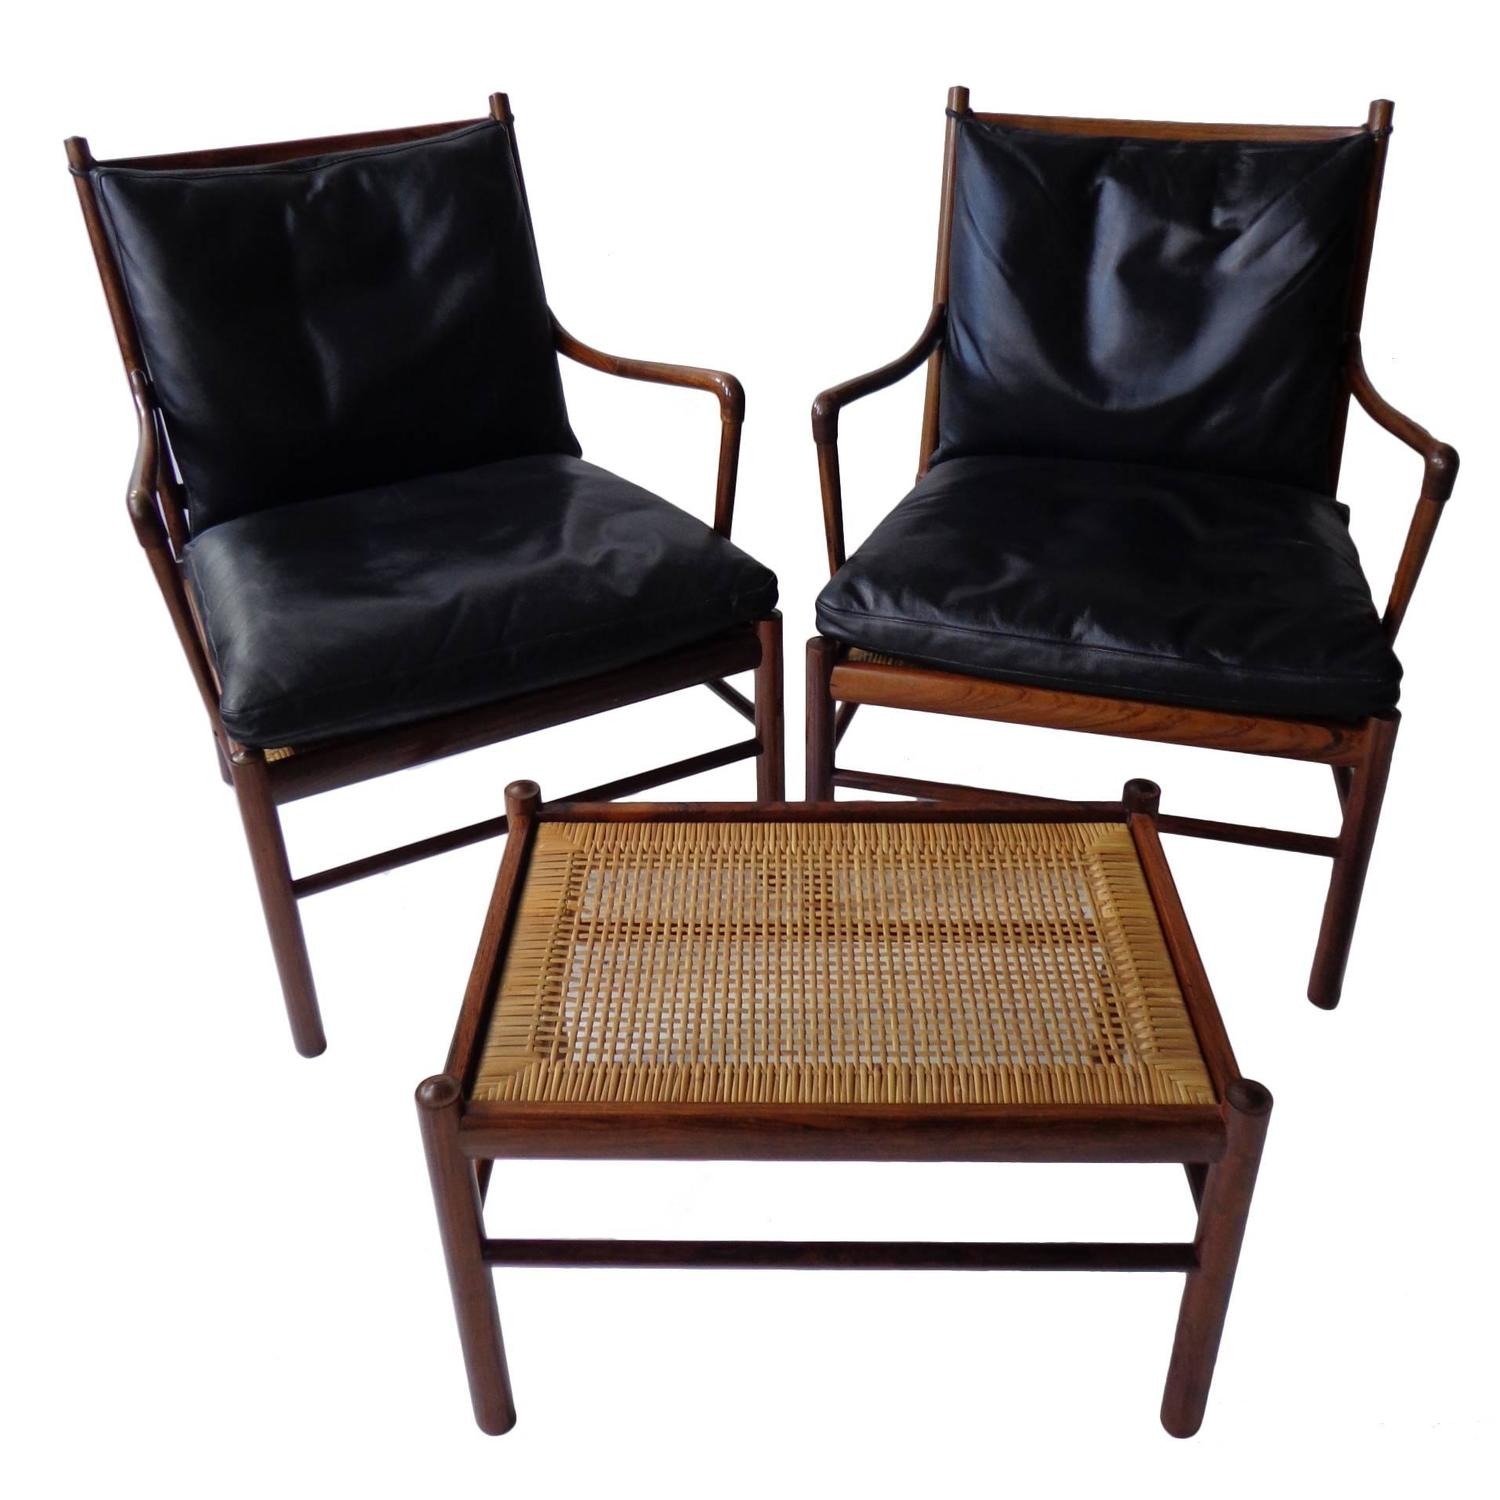 Ole Wanscher Colonial chairs and ottoman